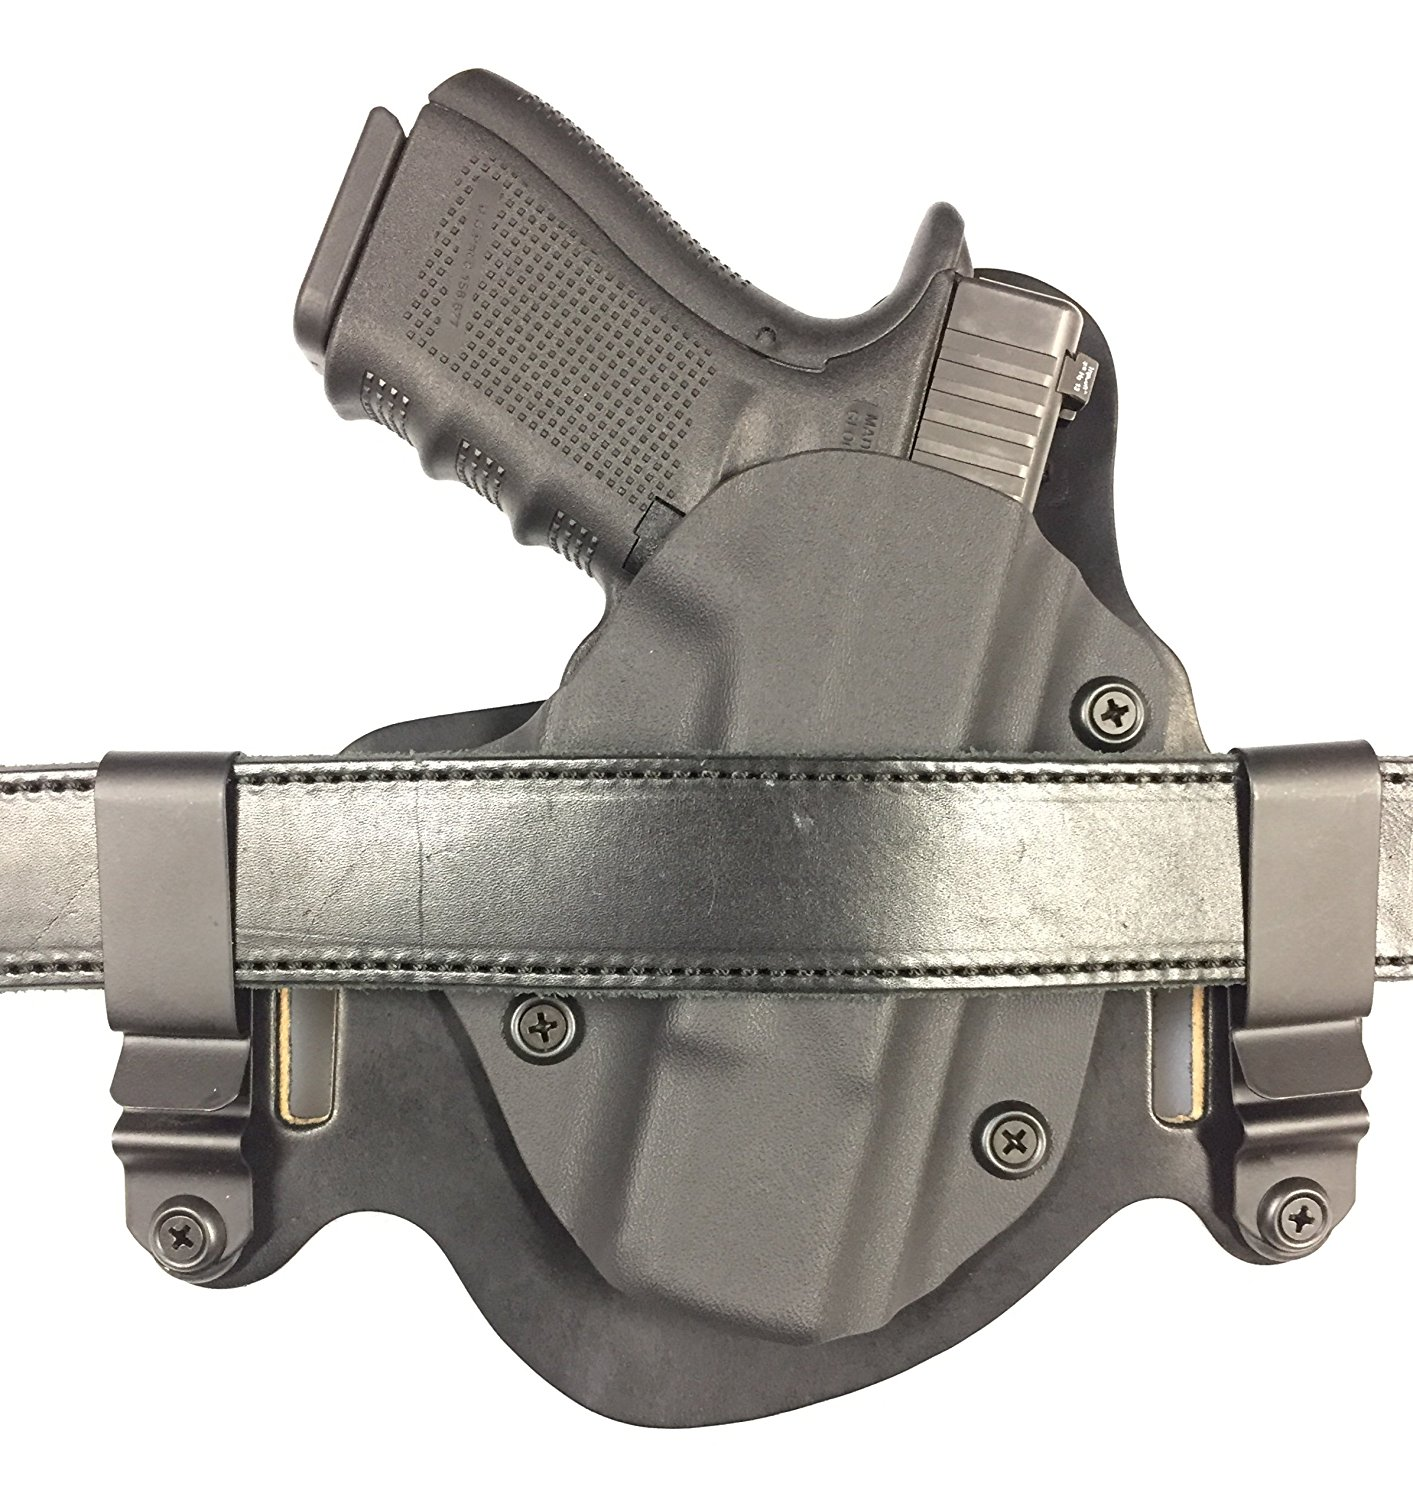 Cheap Kydex Owb Holster, find Kydex Owb Holster deals on